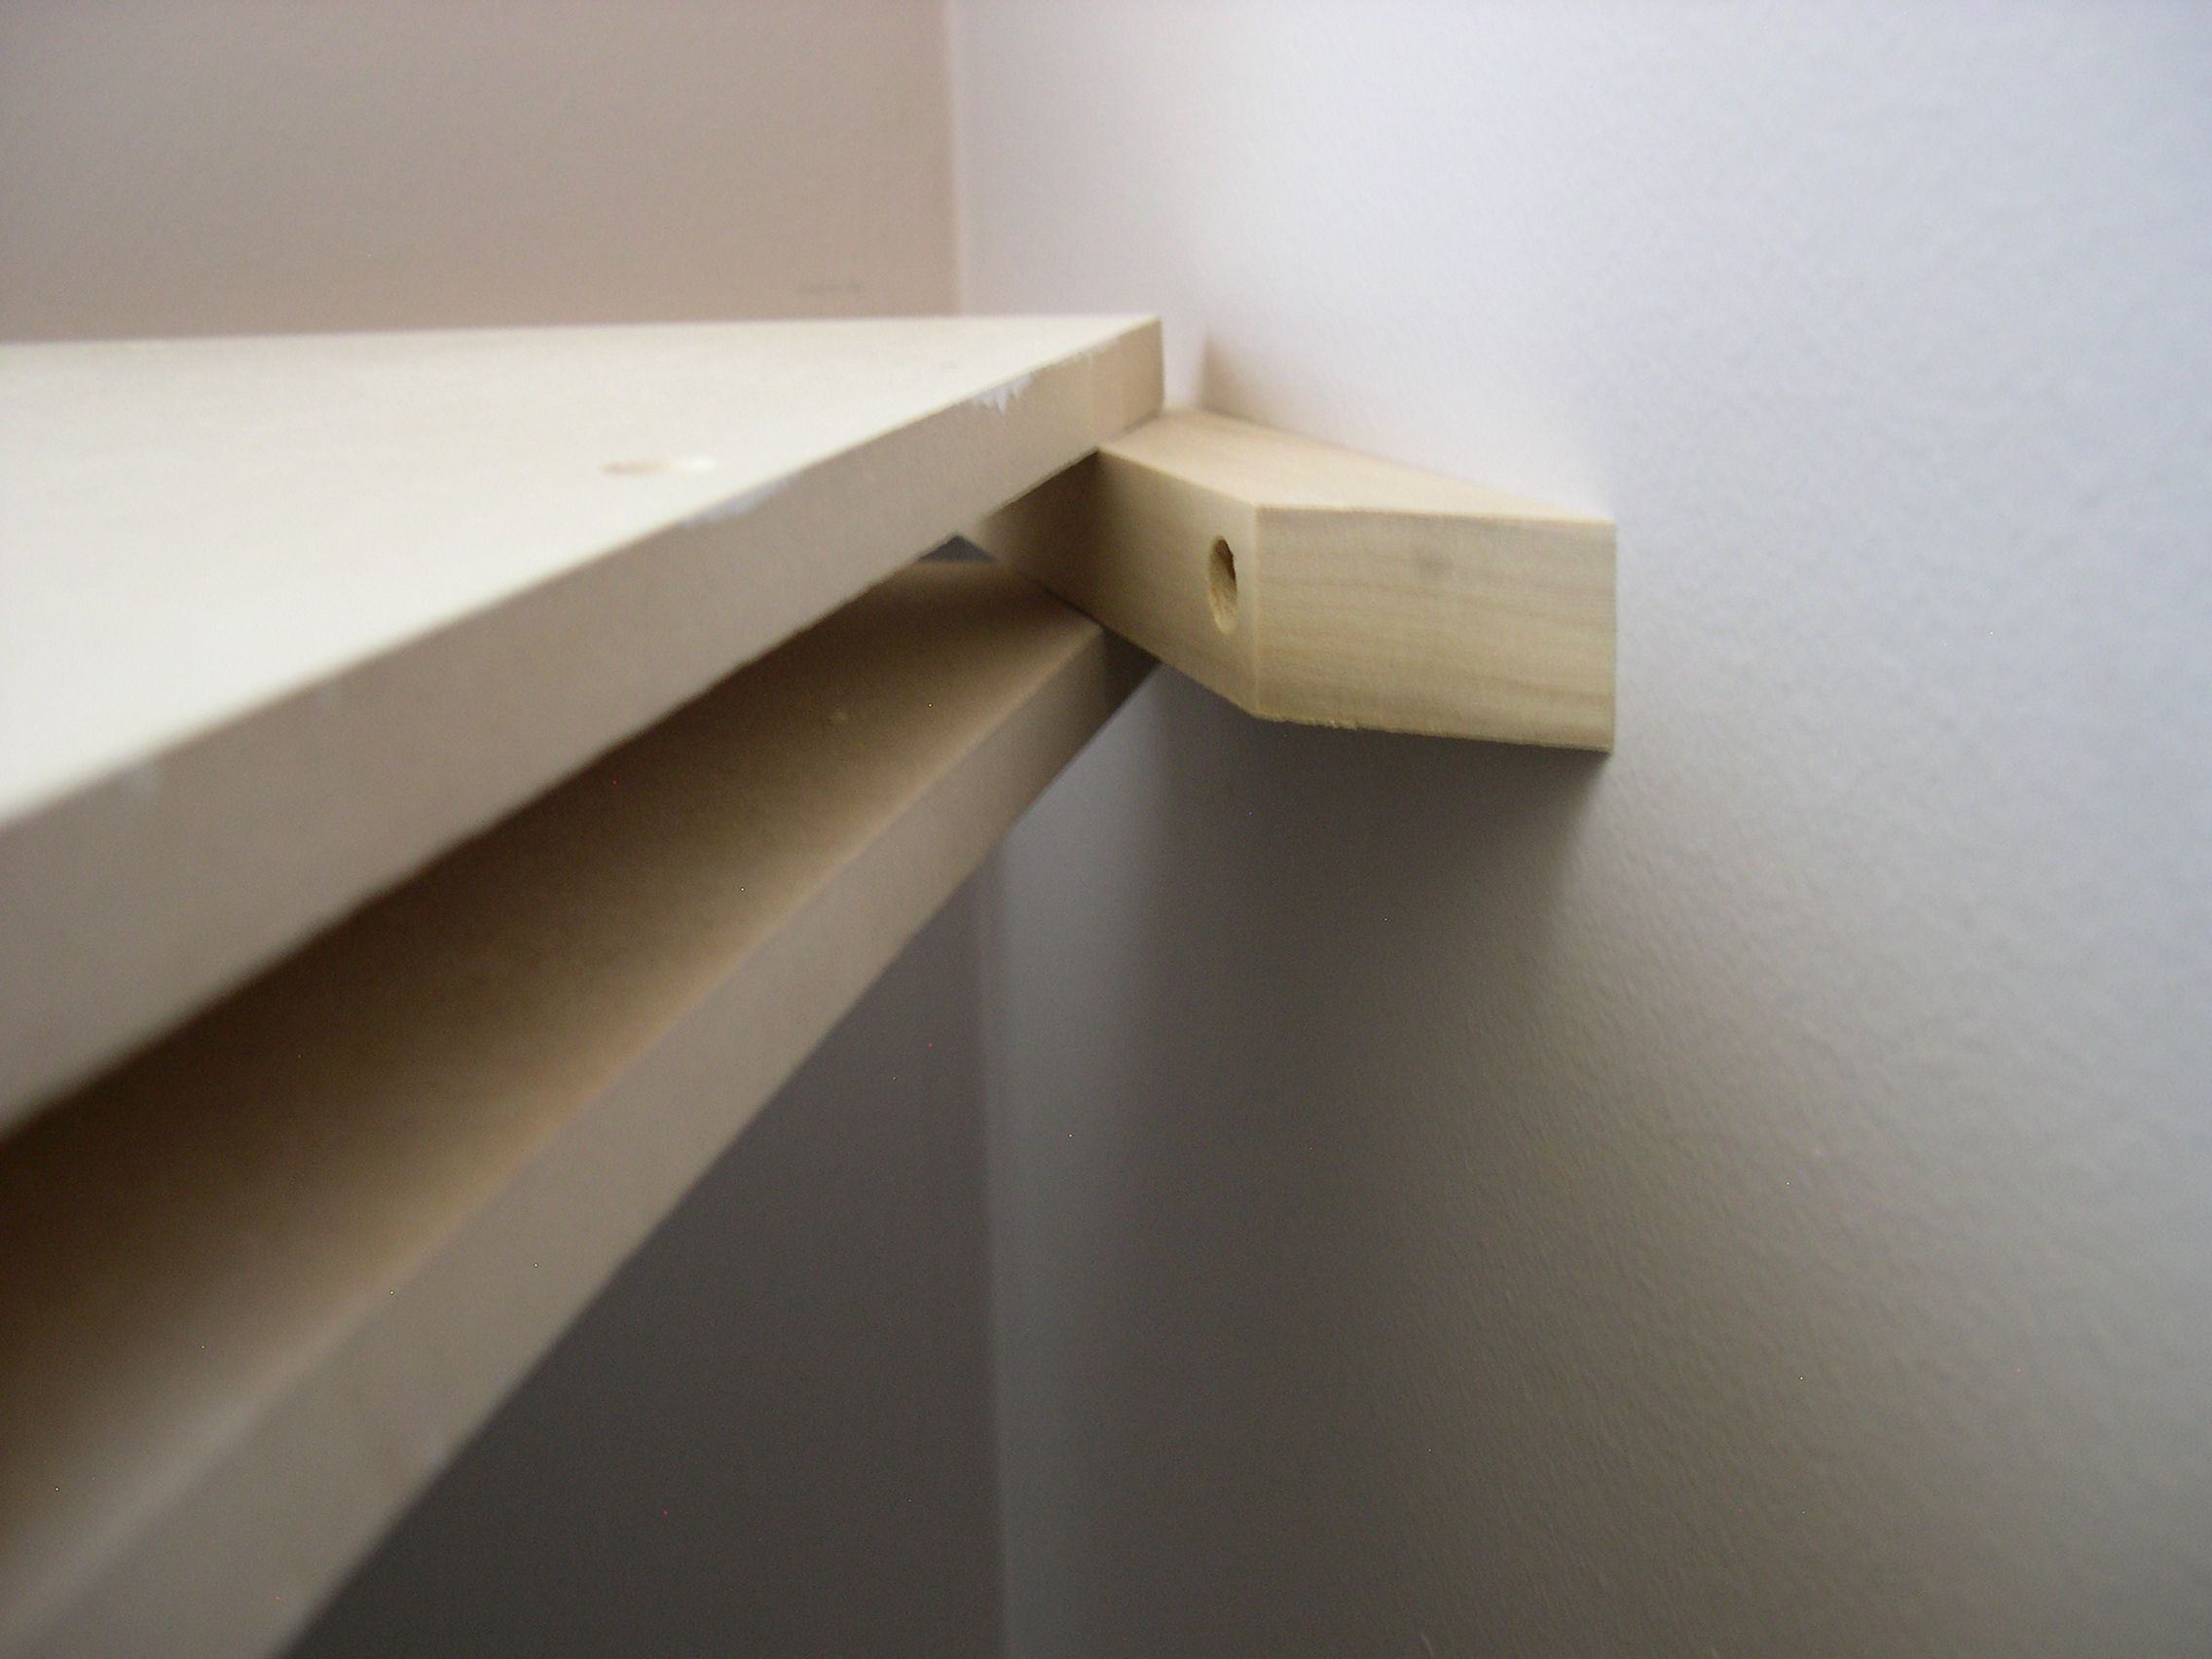 How To Build Floating Shelves With Bracketless Ideas Wall Shelving - Corner floating wall shelf hidden bracket wall shelving corner wall